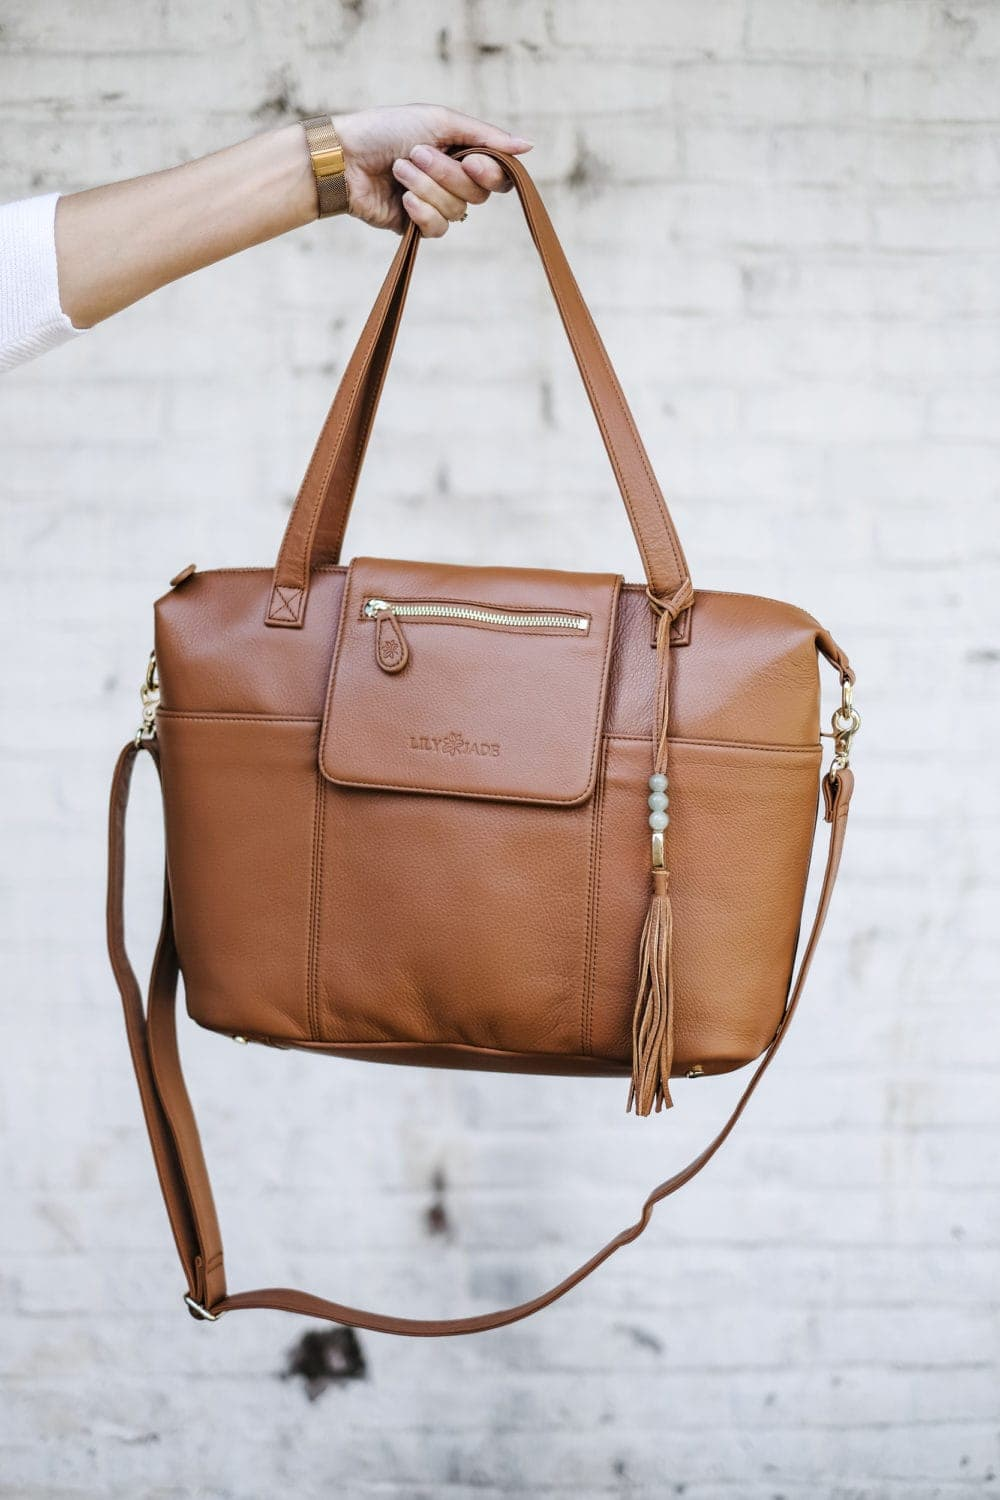 leather diaper bag with multiple straps held in front of white wall